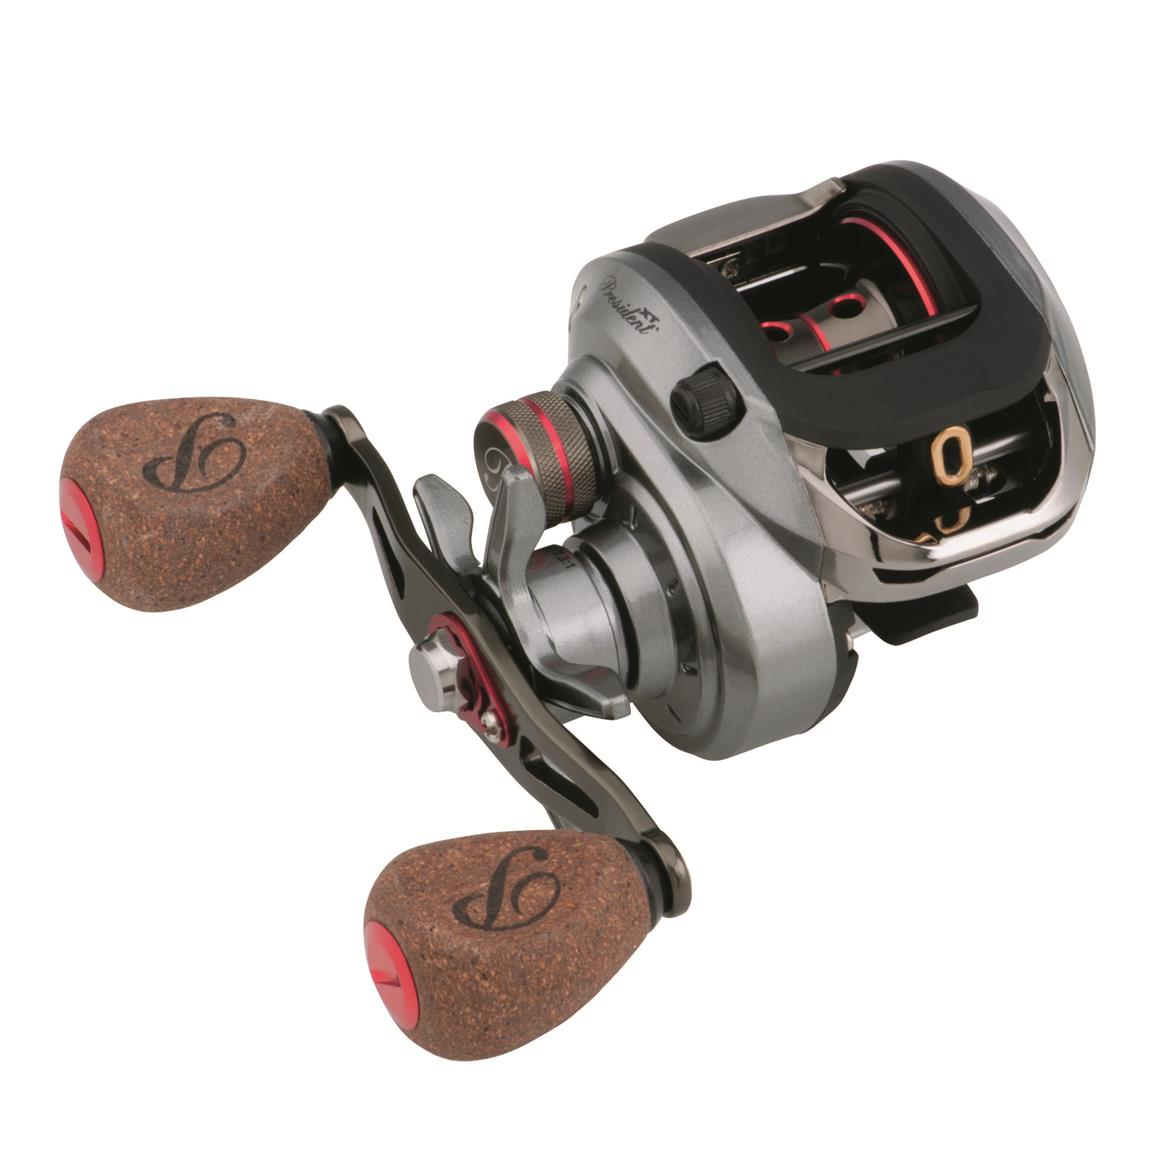 Pflueger President XT Low Profile Baitcasting Fishing Reel